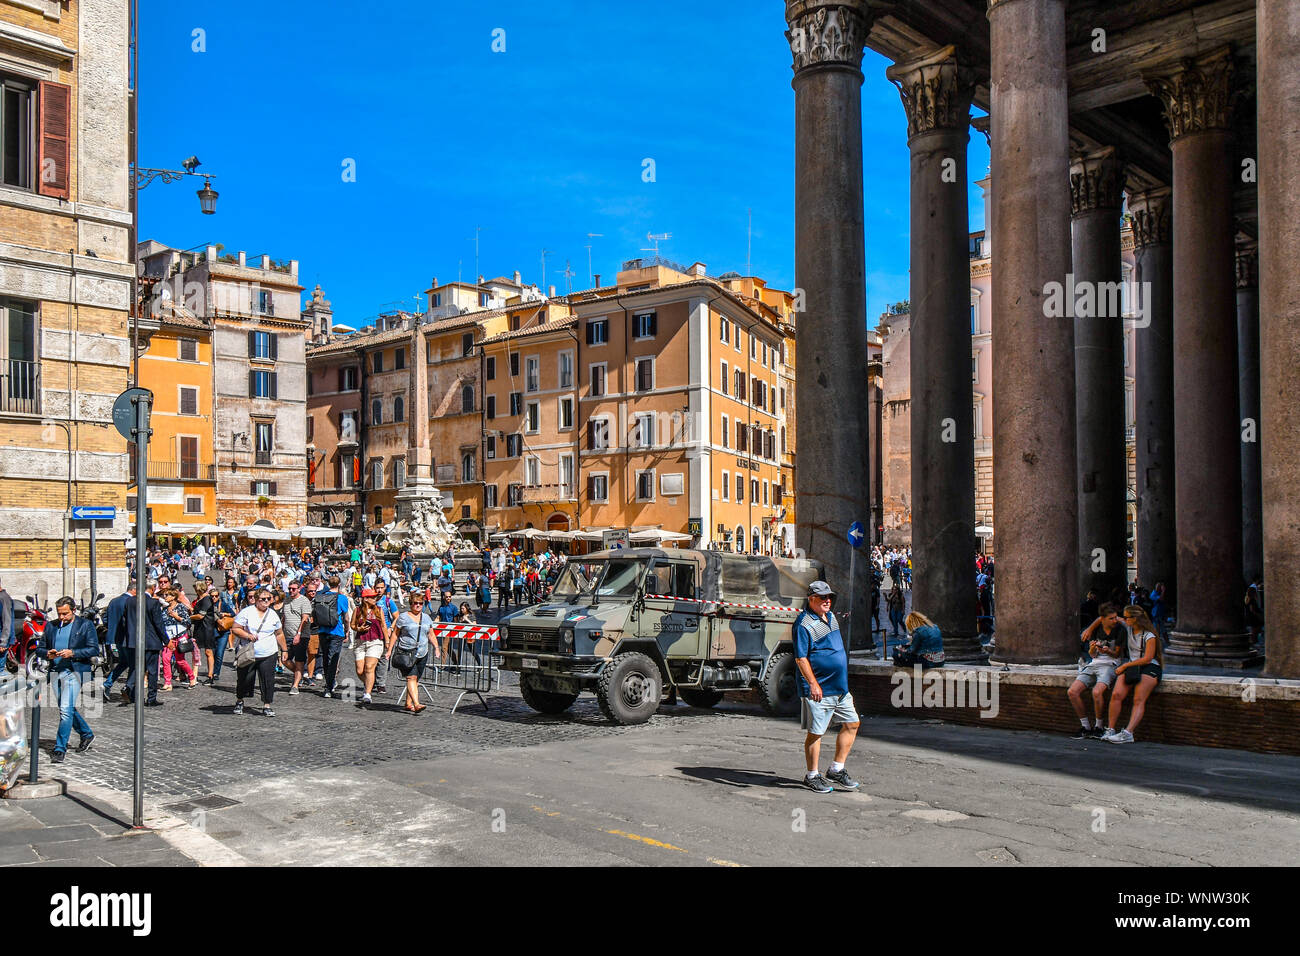 Tourists sightsee at the ancient Pantheon as tourists crowd the Piazza della Rotonda and the Fontana dei Pantheon and obelisk as soldiers secure area Stock Photo